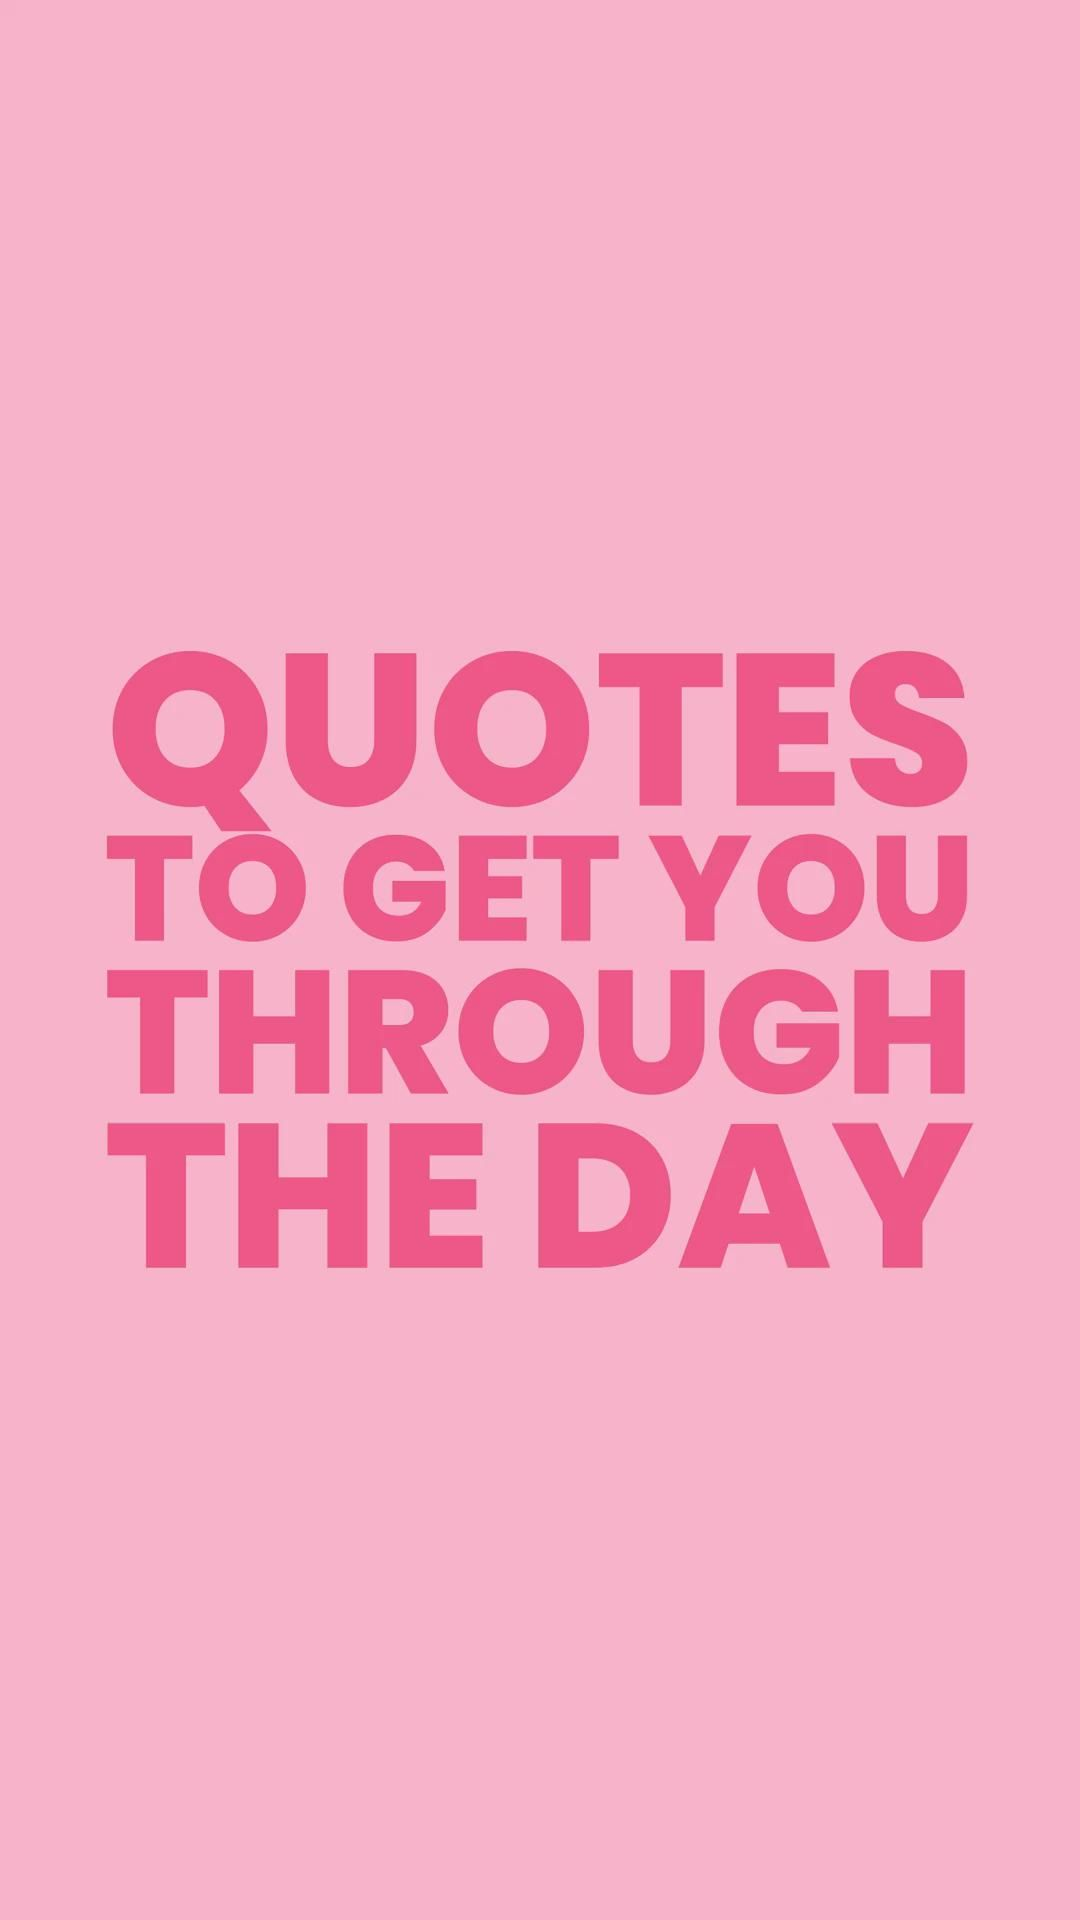 Quotes to get you through your day